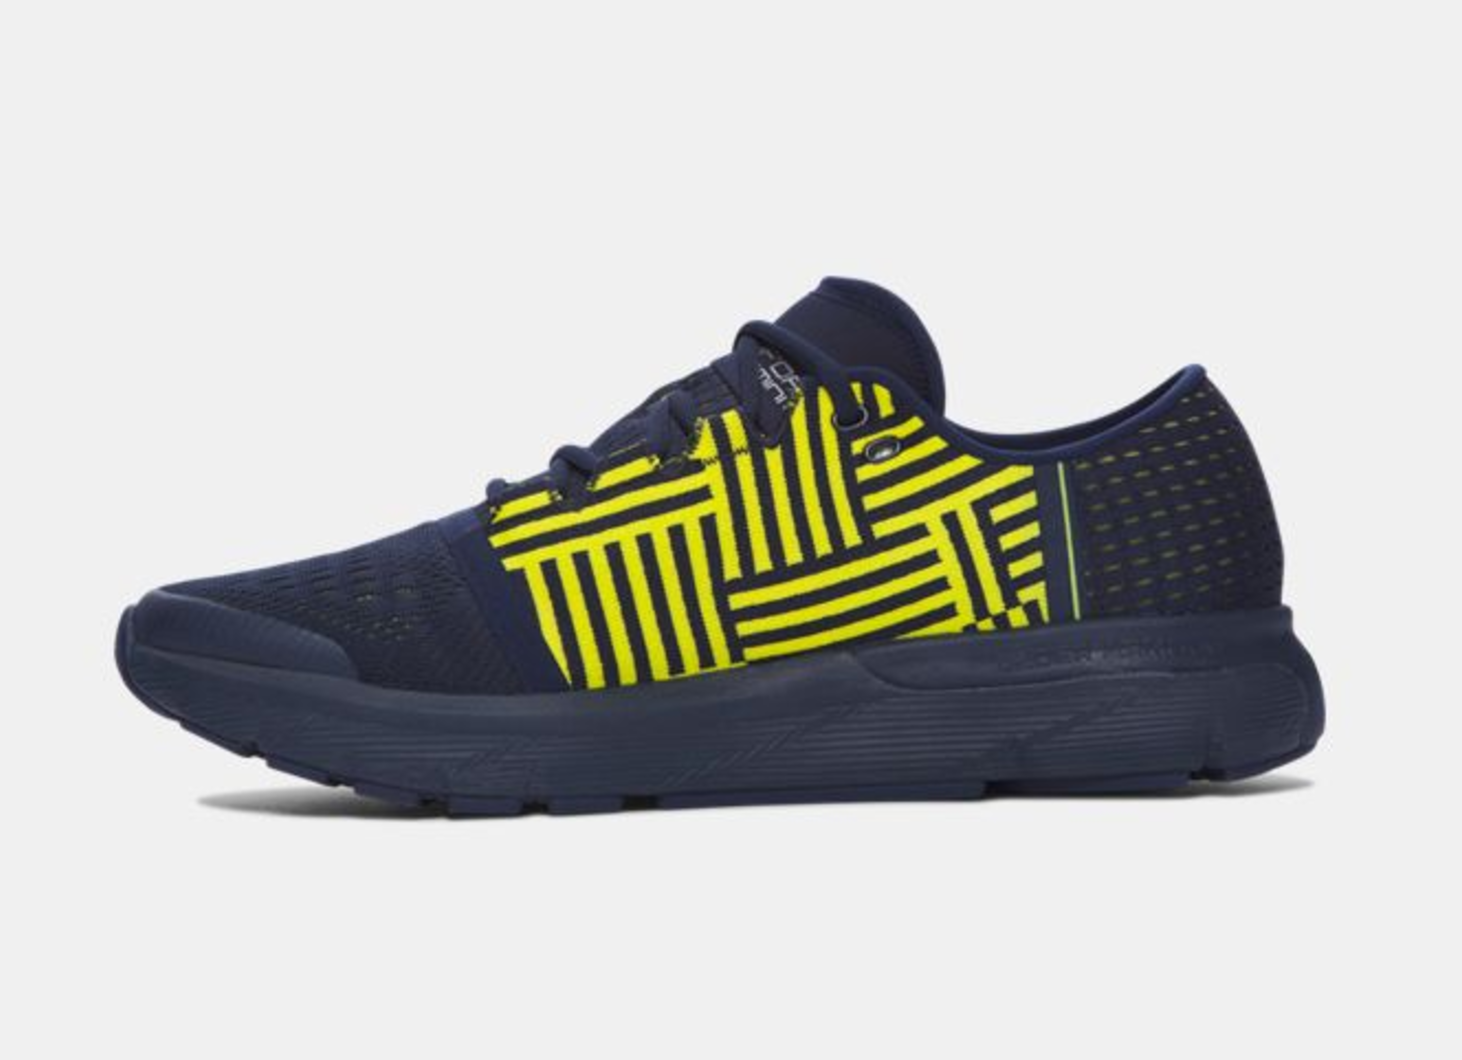 low priced 001ea e9ebd Under Armour Launches a NFL Combine Authentic UA SpeedForm ...